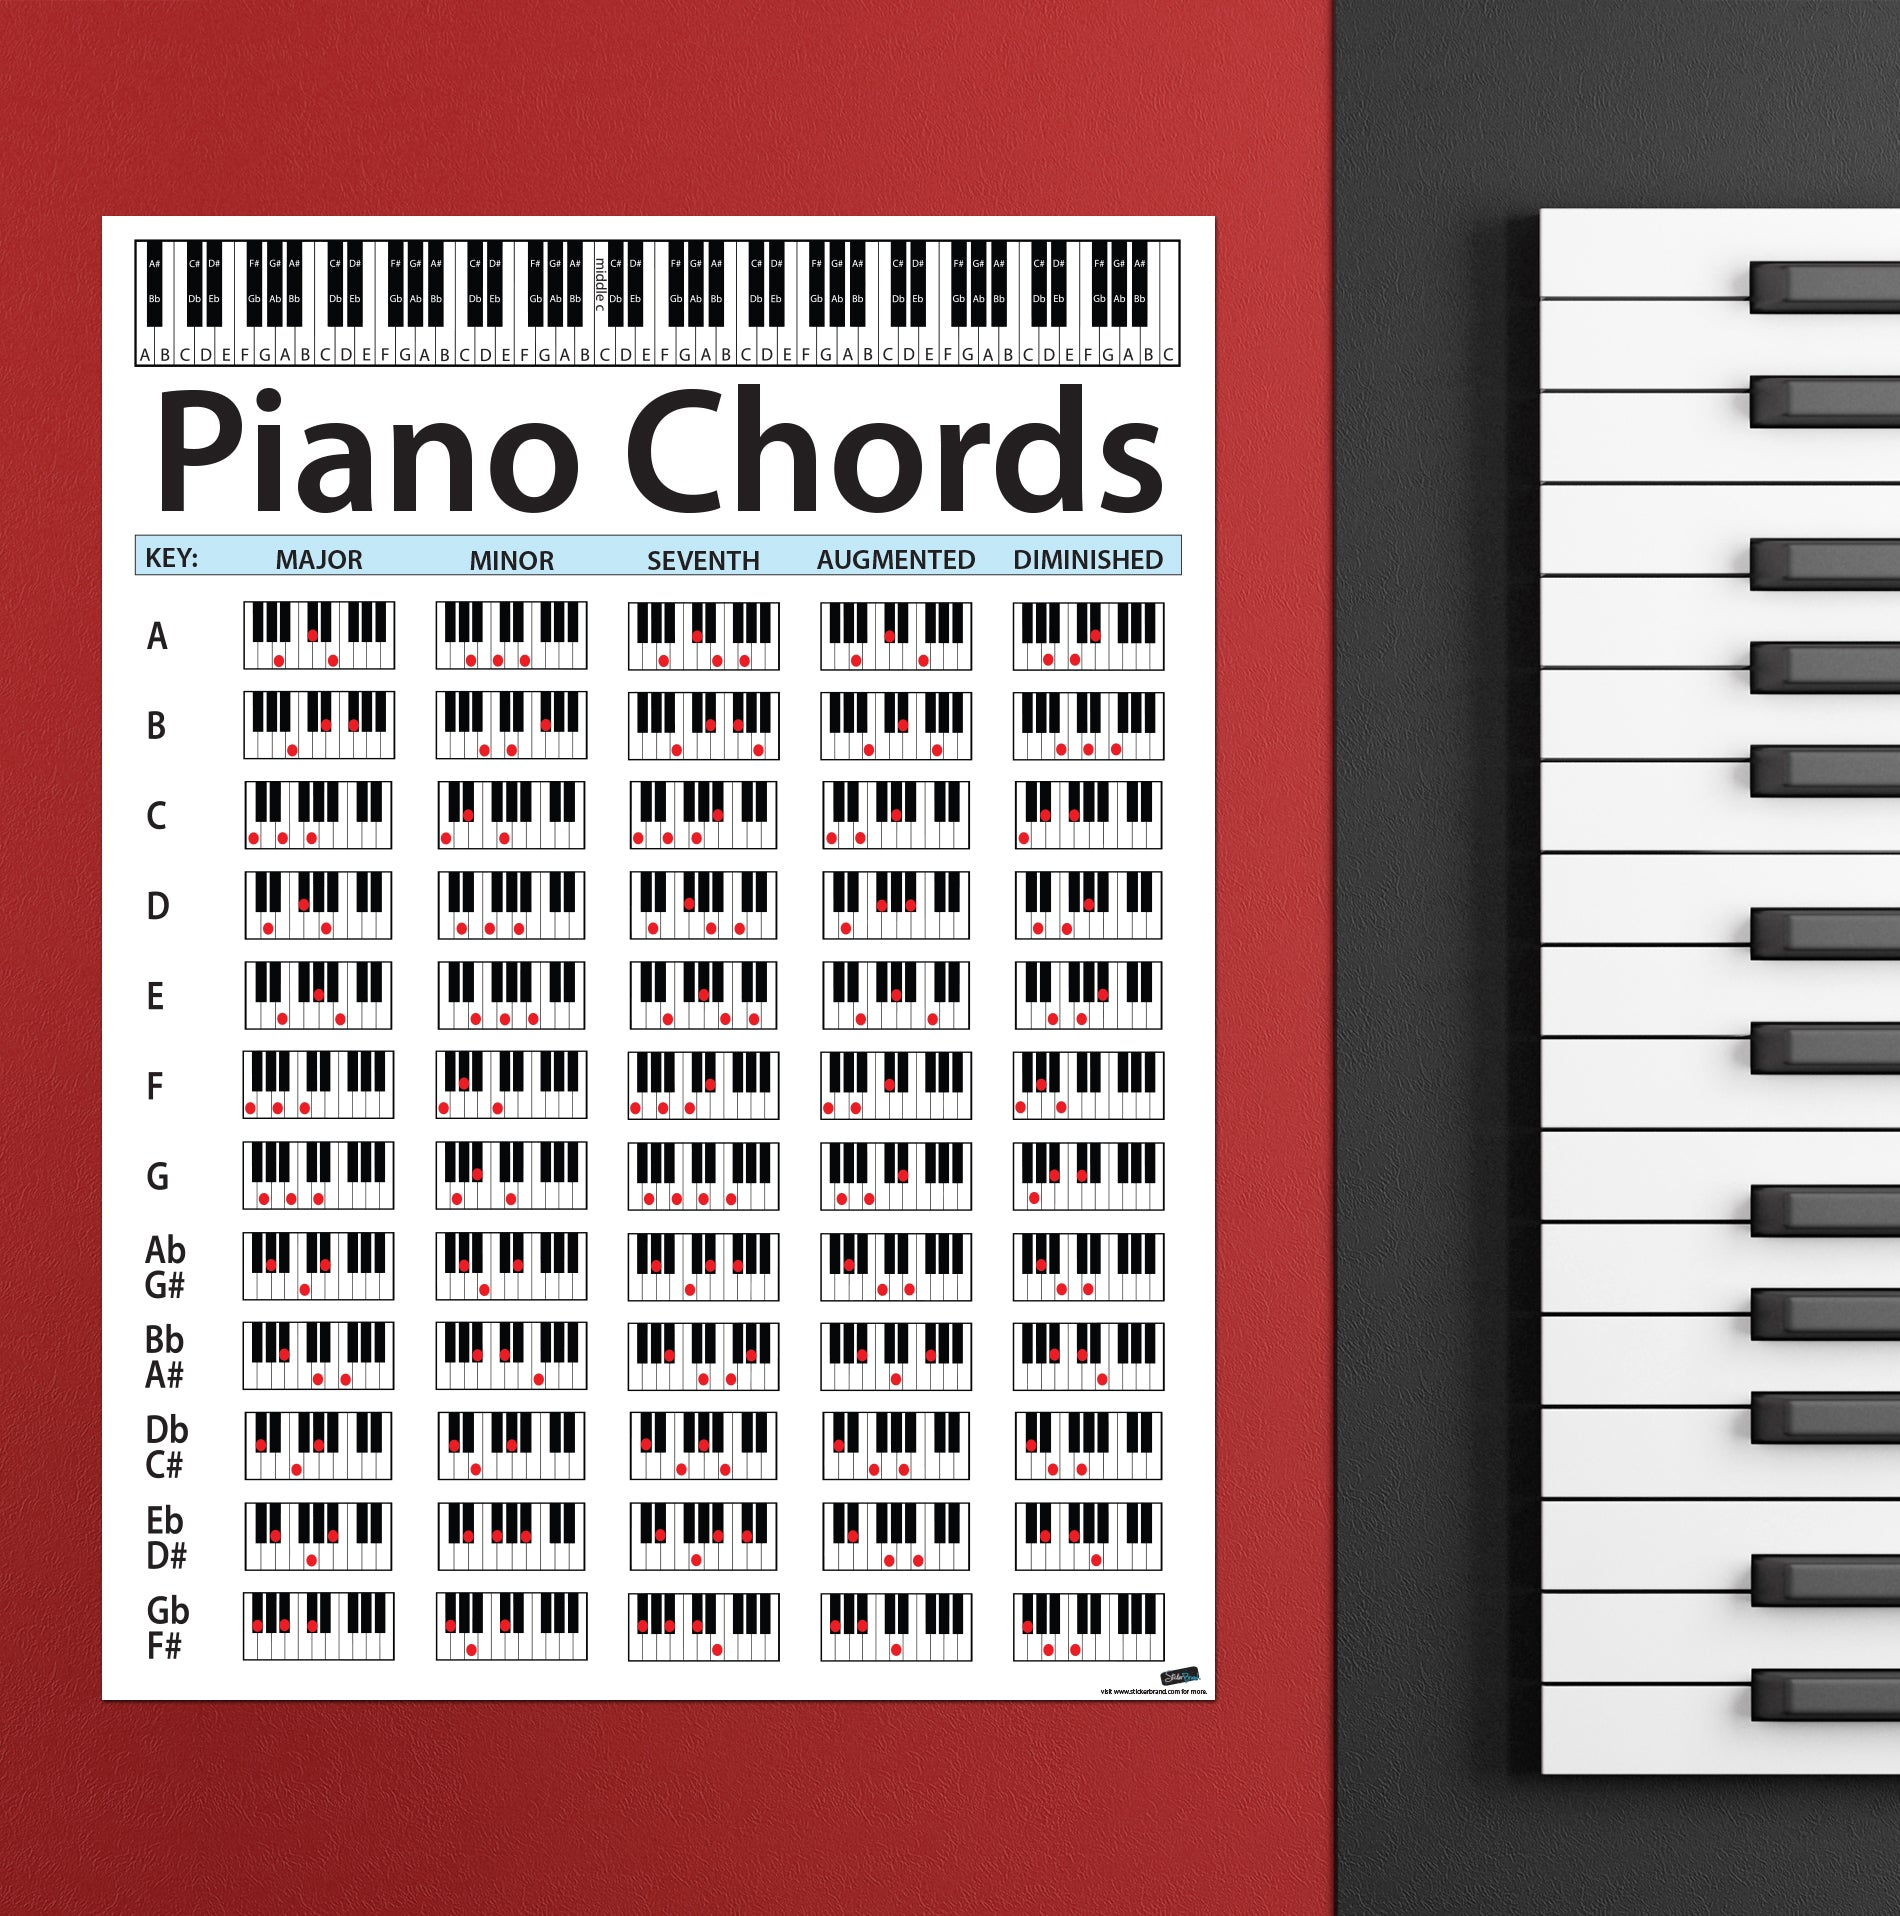 graphic regarding Piano Chords Chart Printable named Piano Chord Chart Poster. Instructive Effortless Specialist Chart